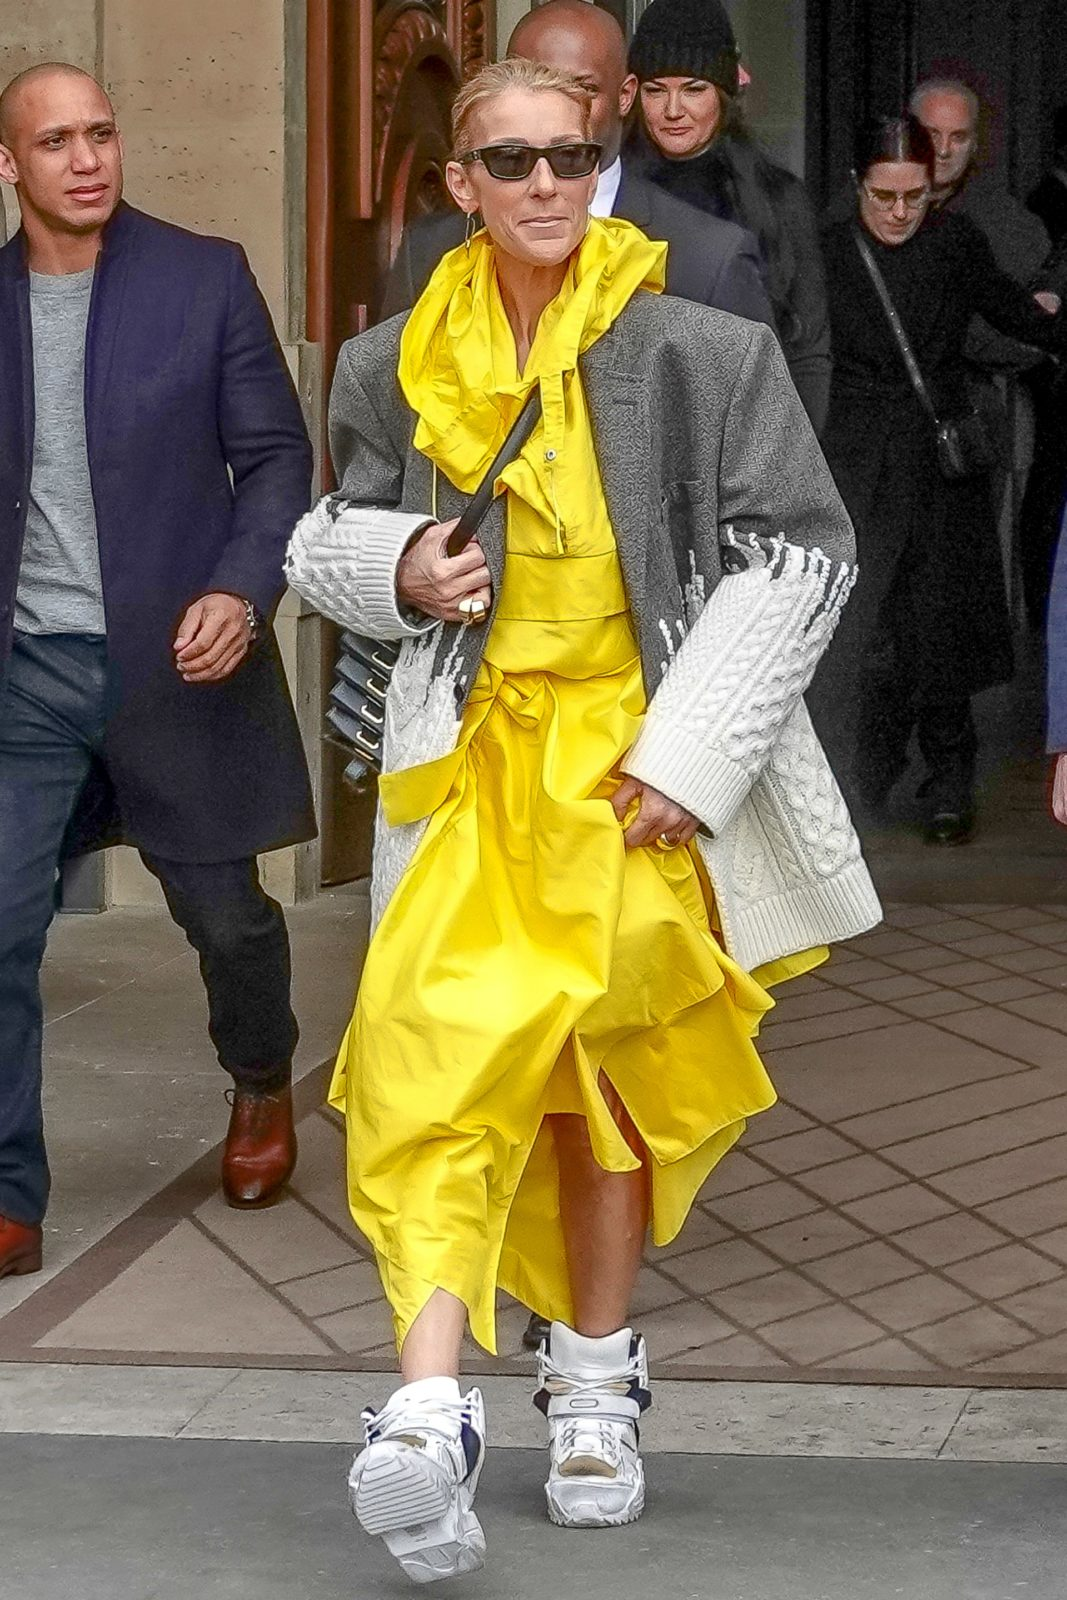 Celine Dion was spotted in Paris sporting an eye-popping yellow ensemble.